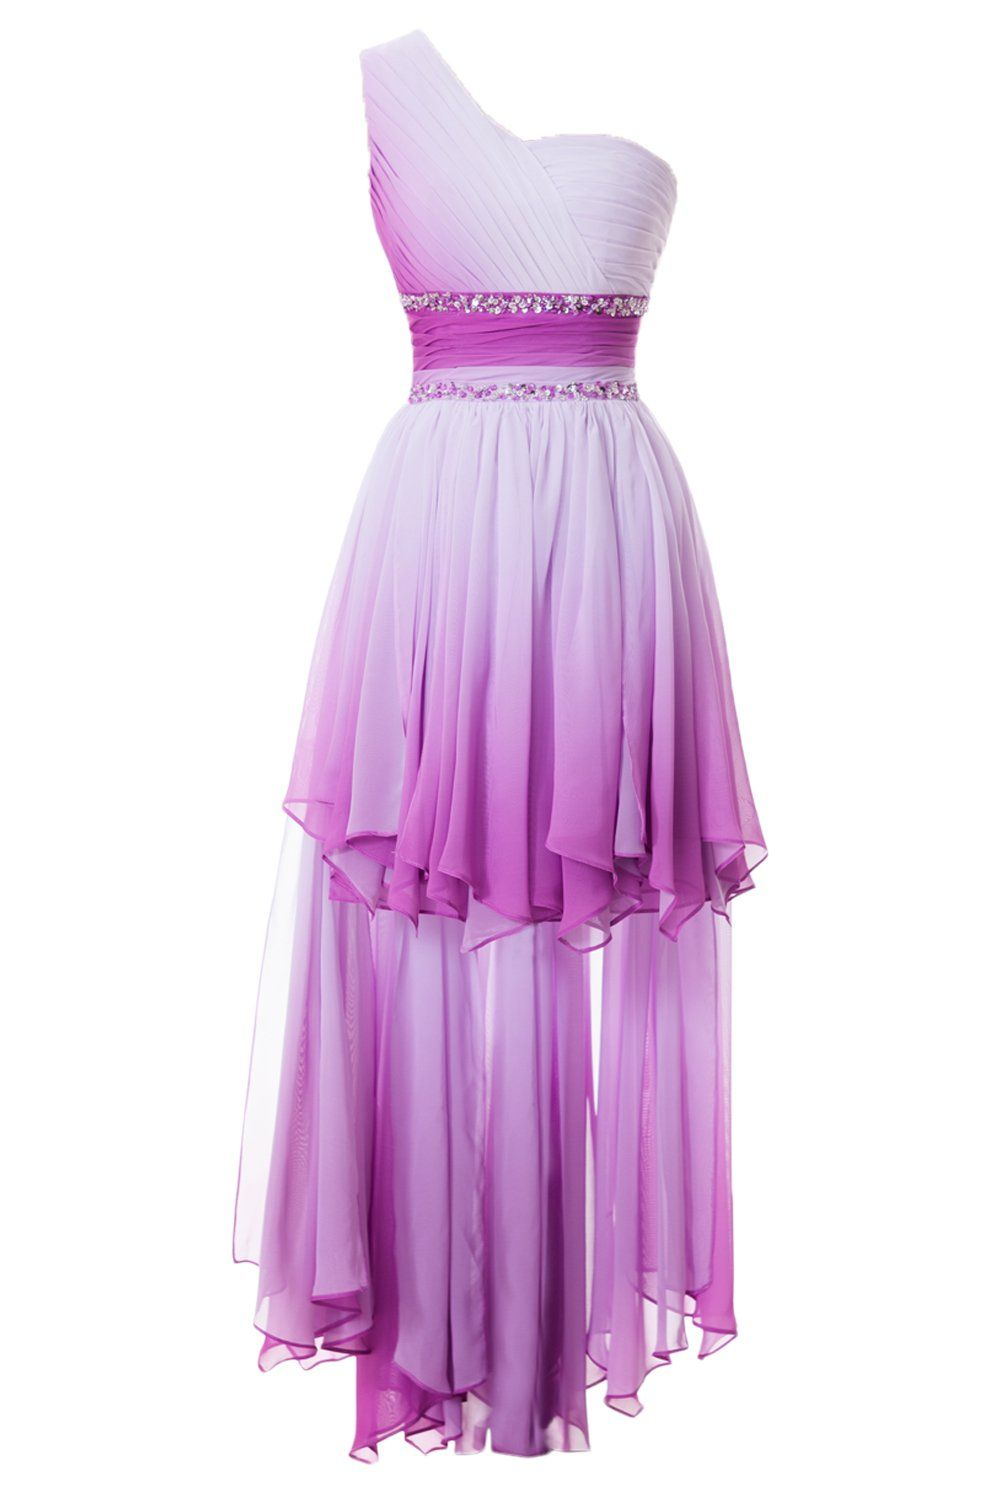 Sunvary One Shoulder High Low Chiffon Bridesmaid Dresses Homecoming ...